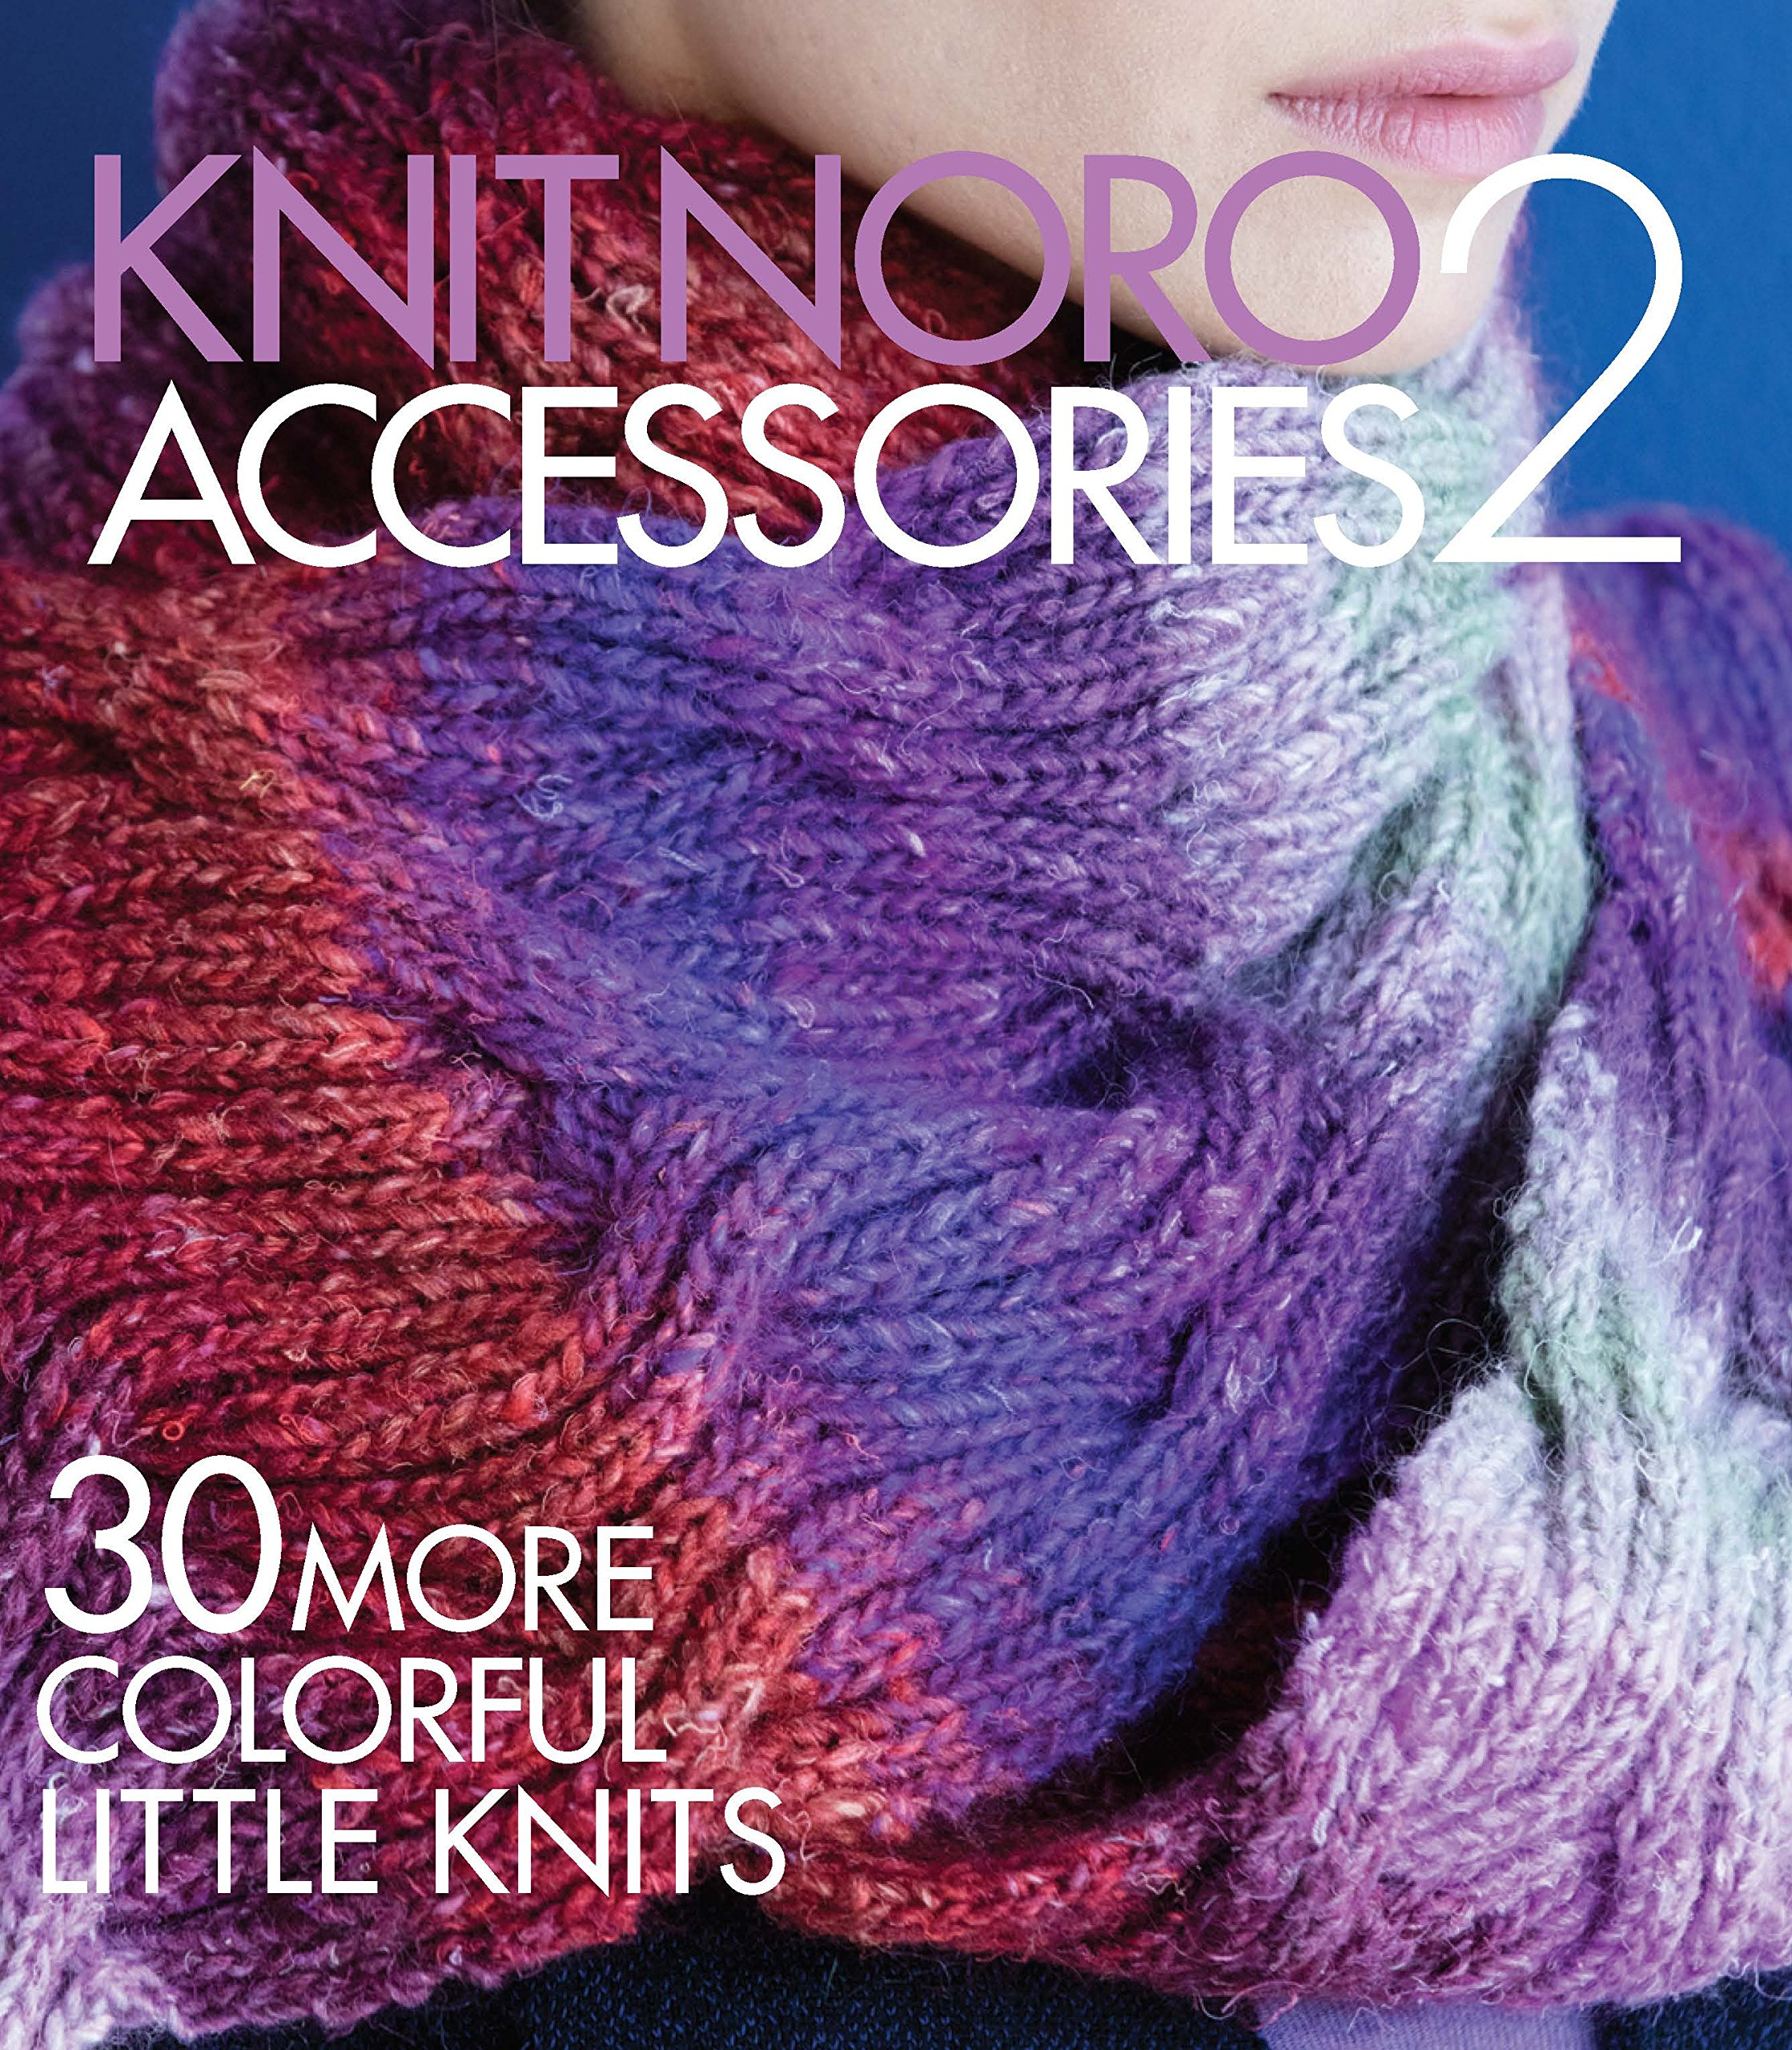 KNIT NORO ACCESSORIES 2 (Knit Noro Collection)